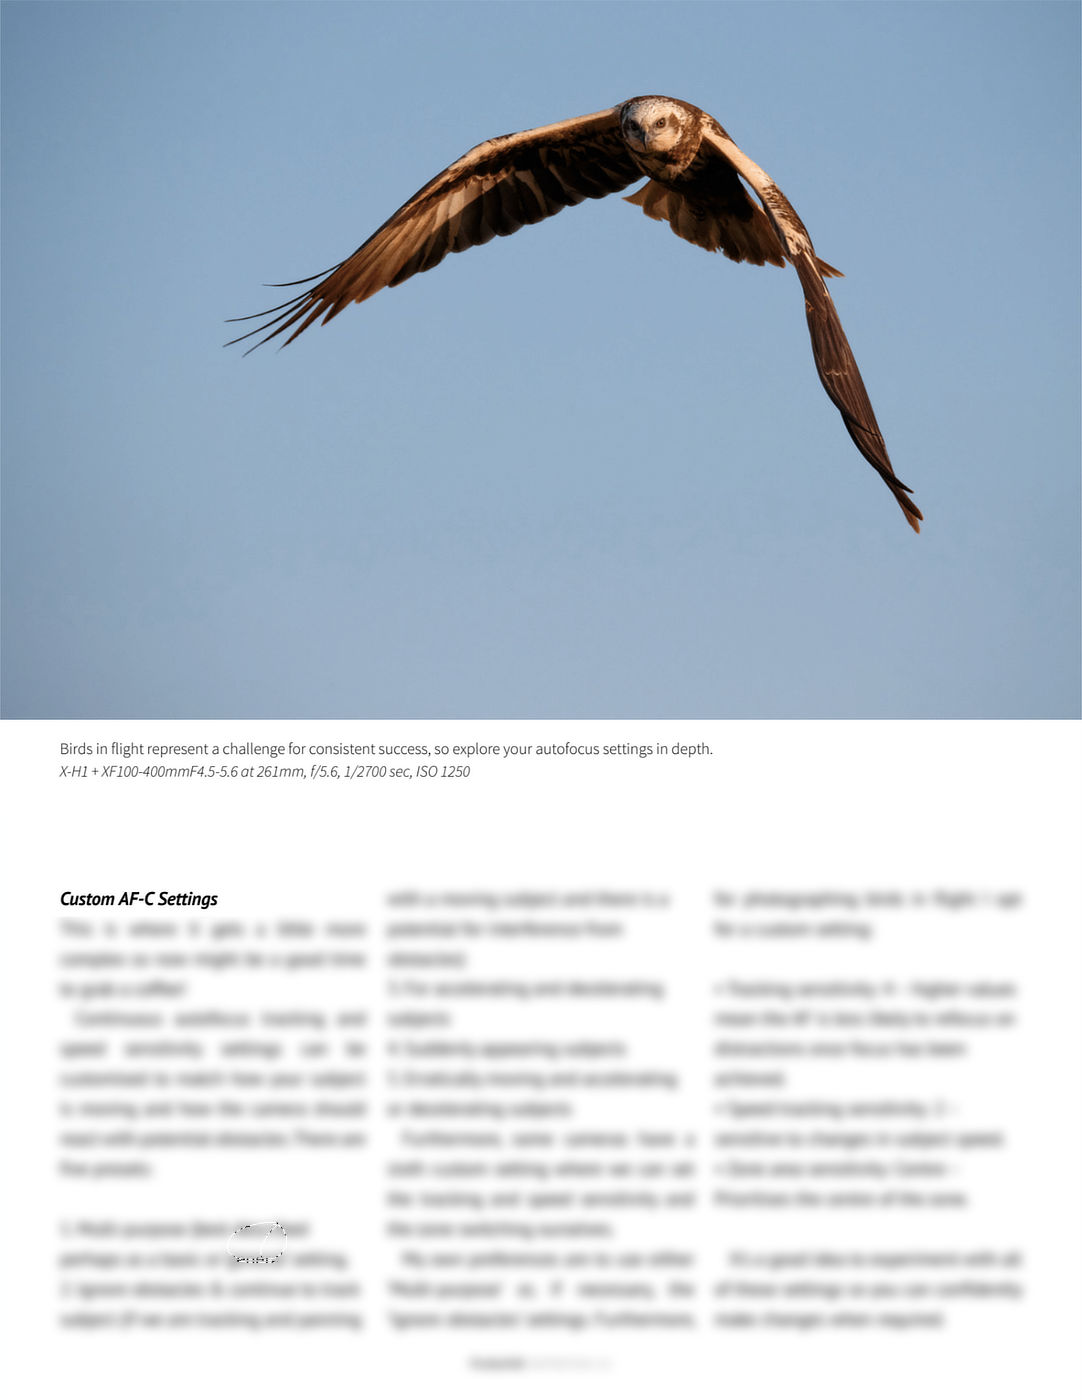 Fujilove Magazine Alan Hewitt Getting to Grips with Wildlife Photography